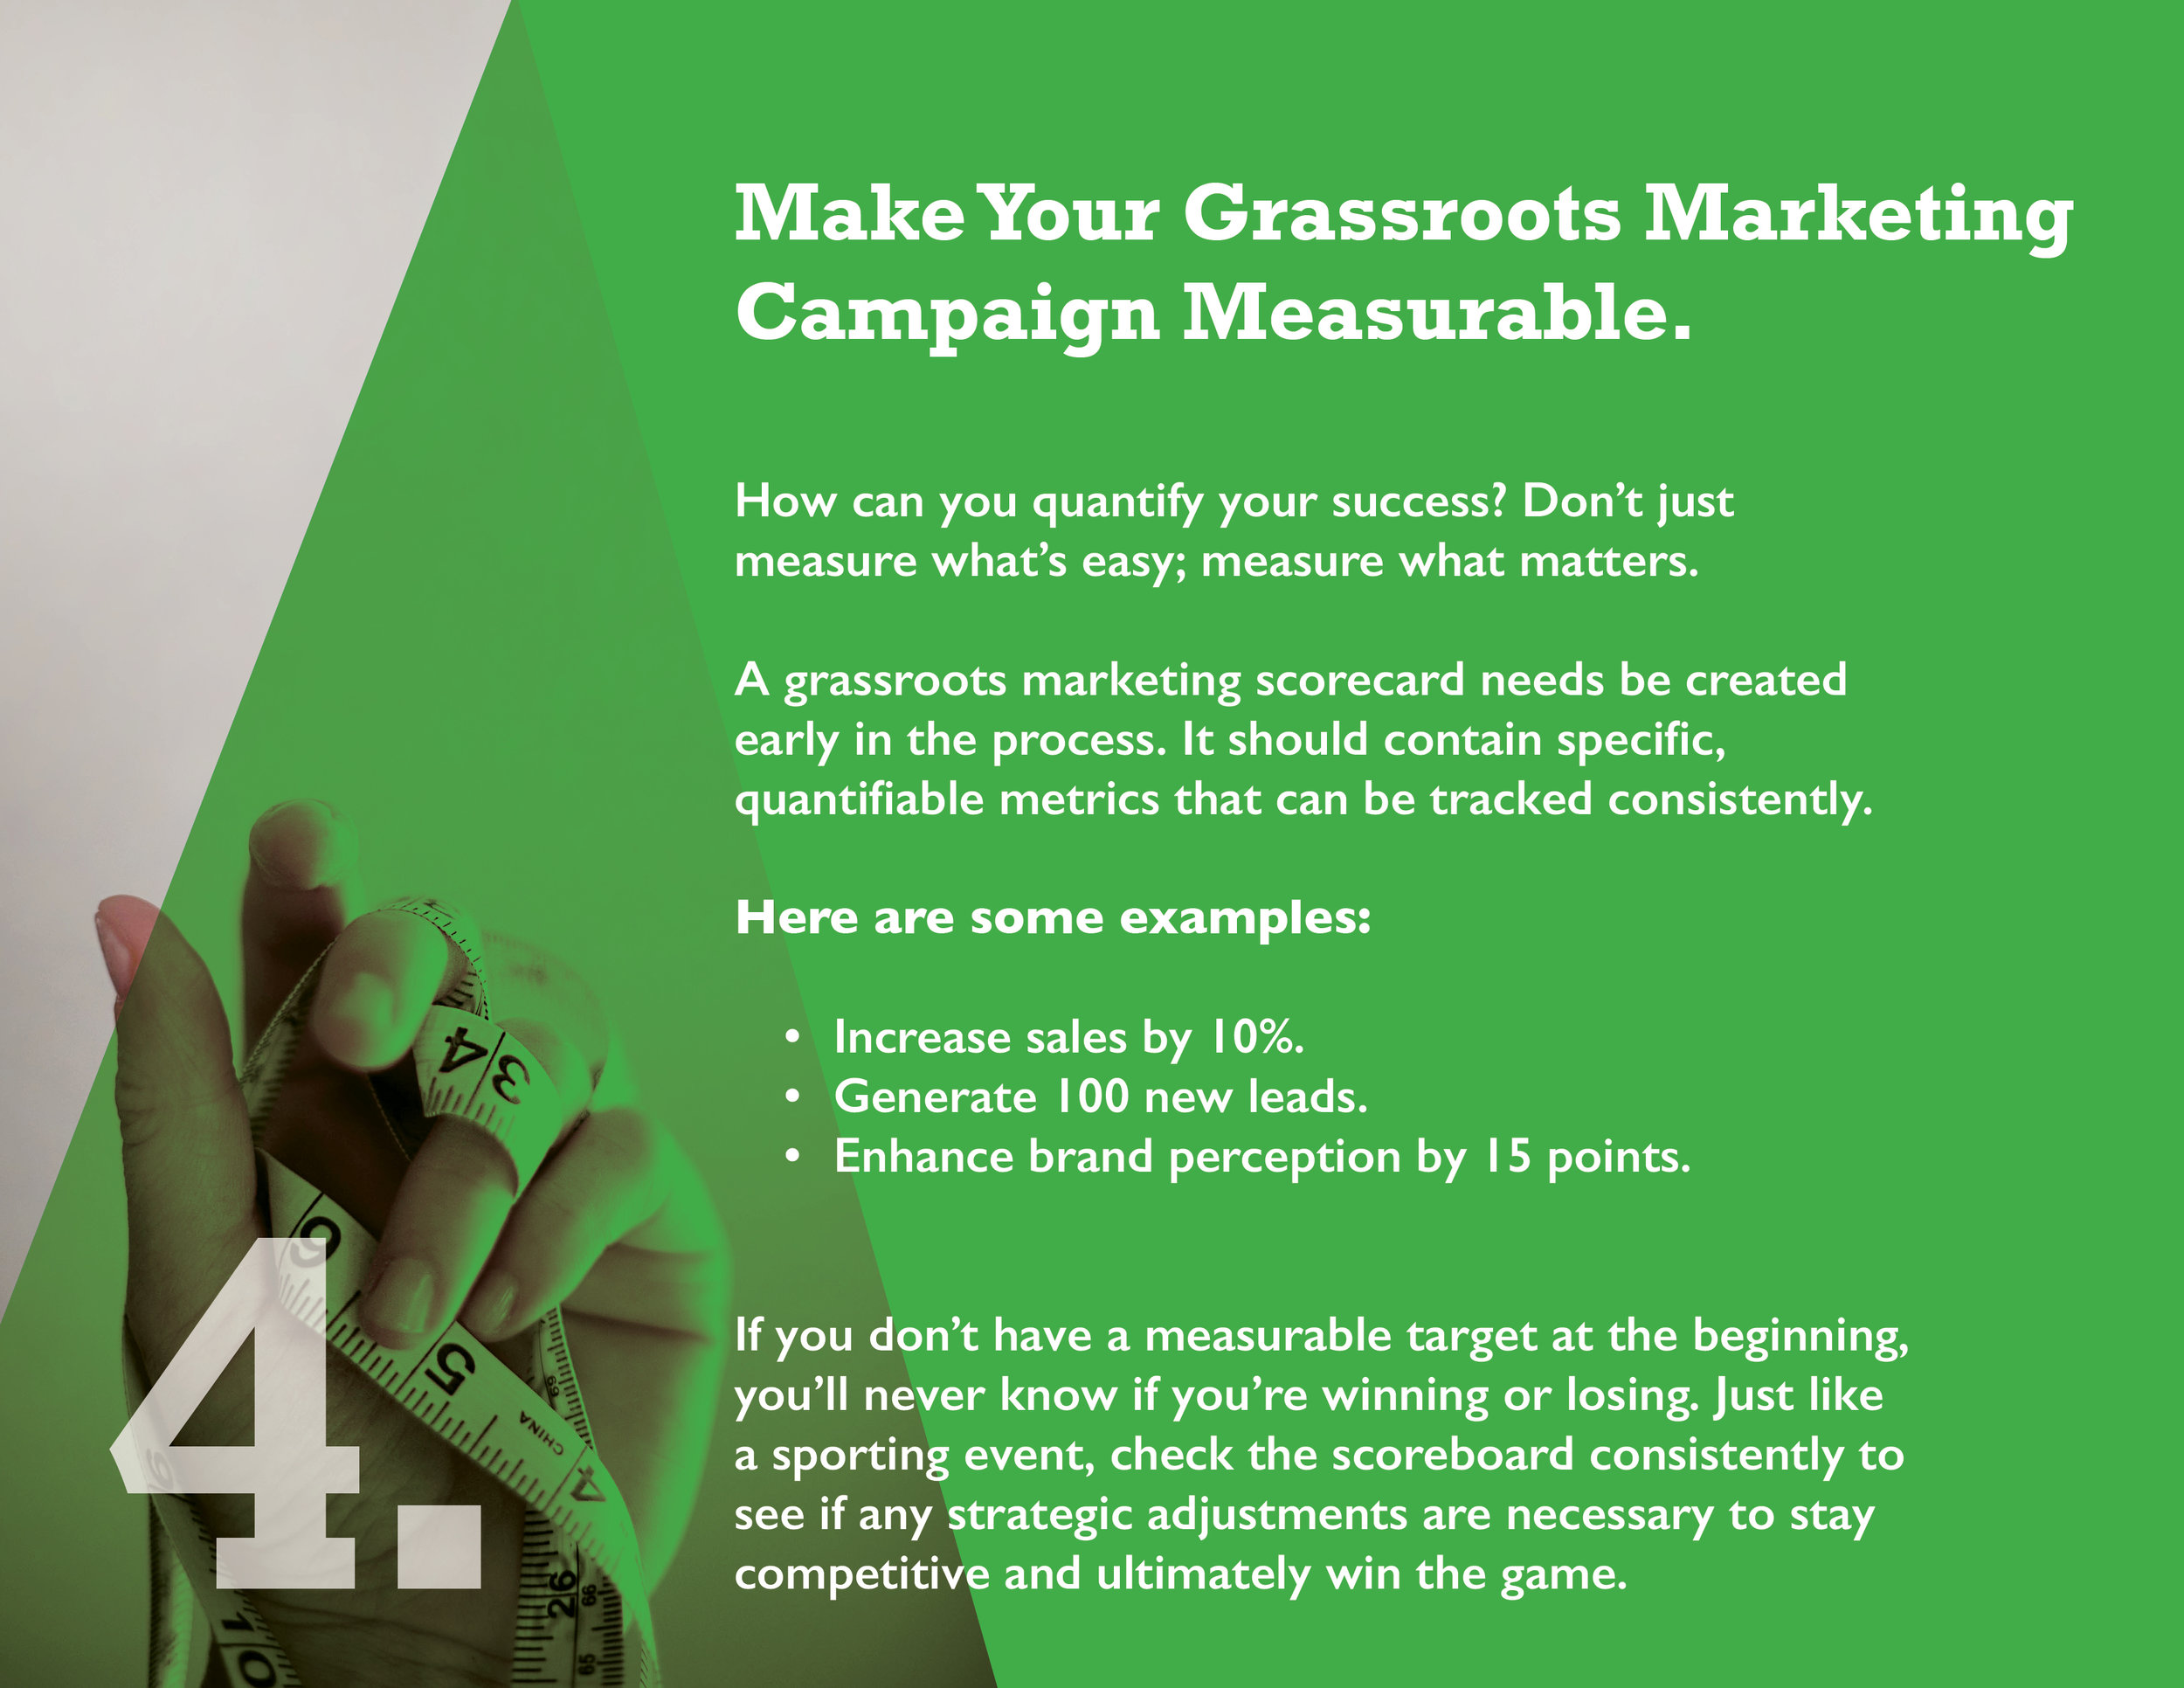 GrassrootsMarketing_guide_v38.jpg